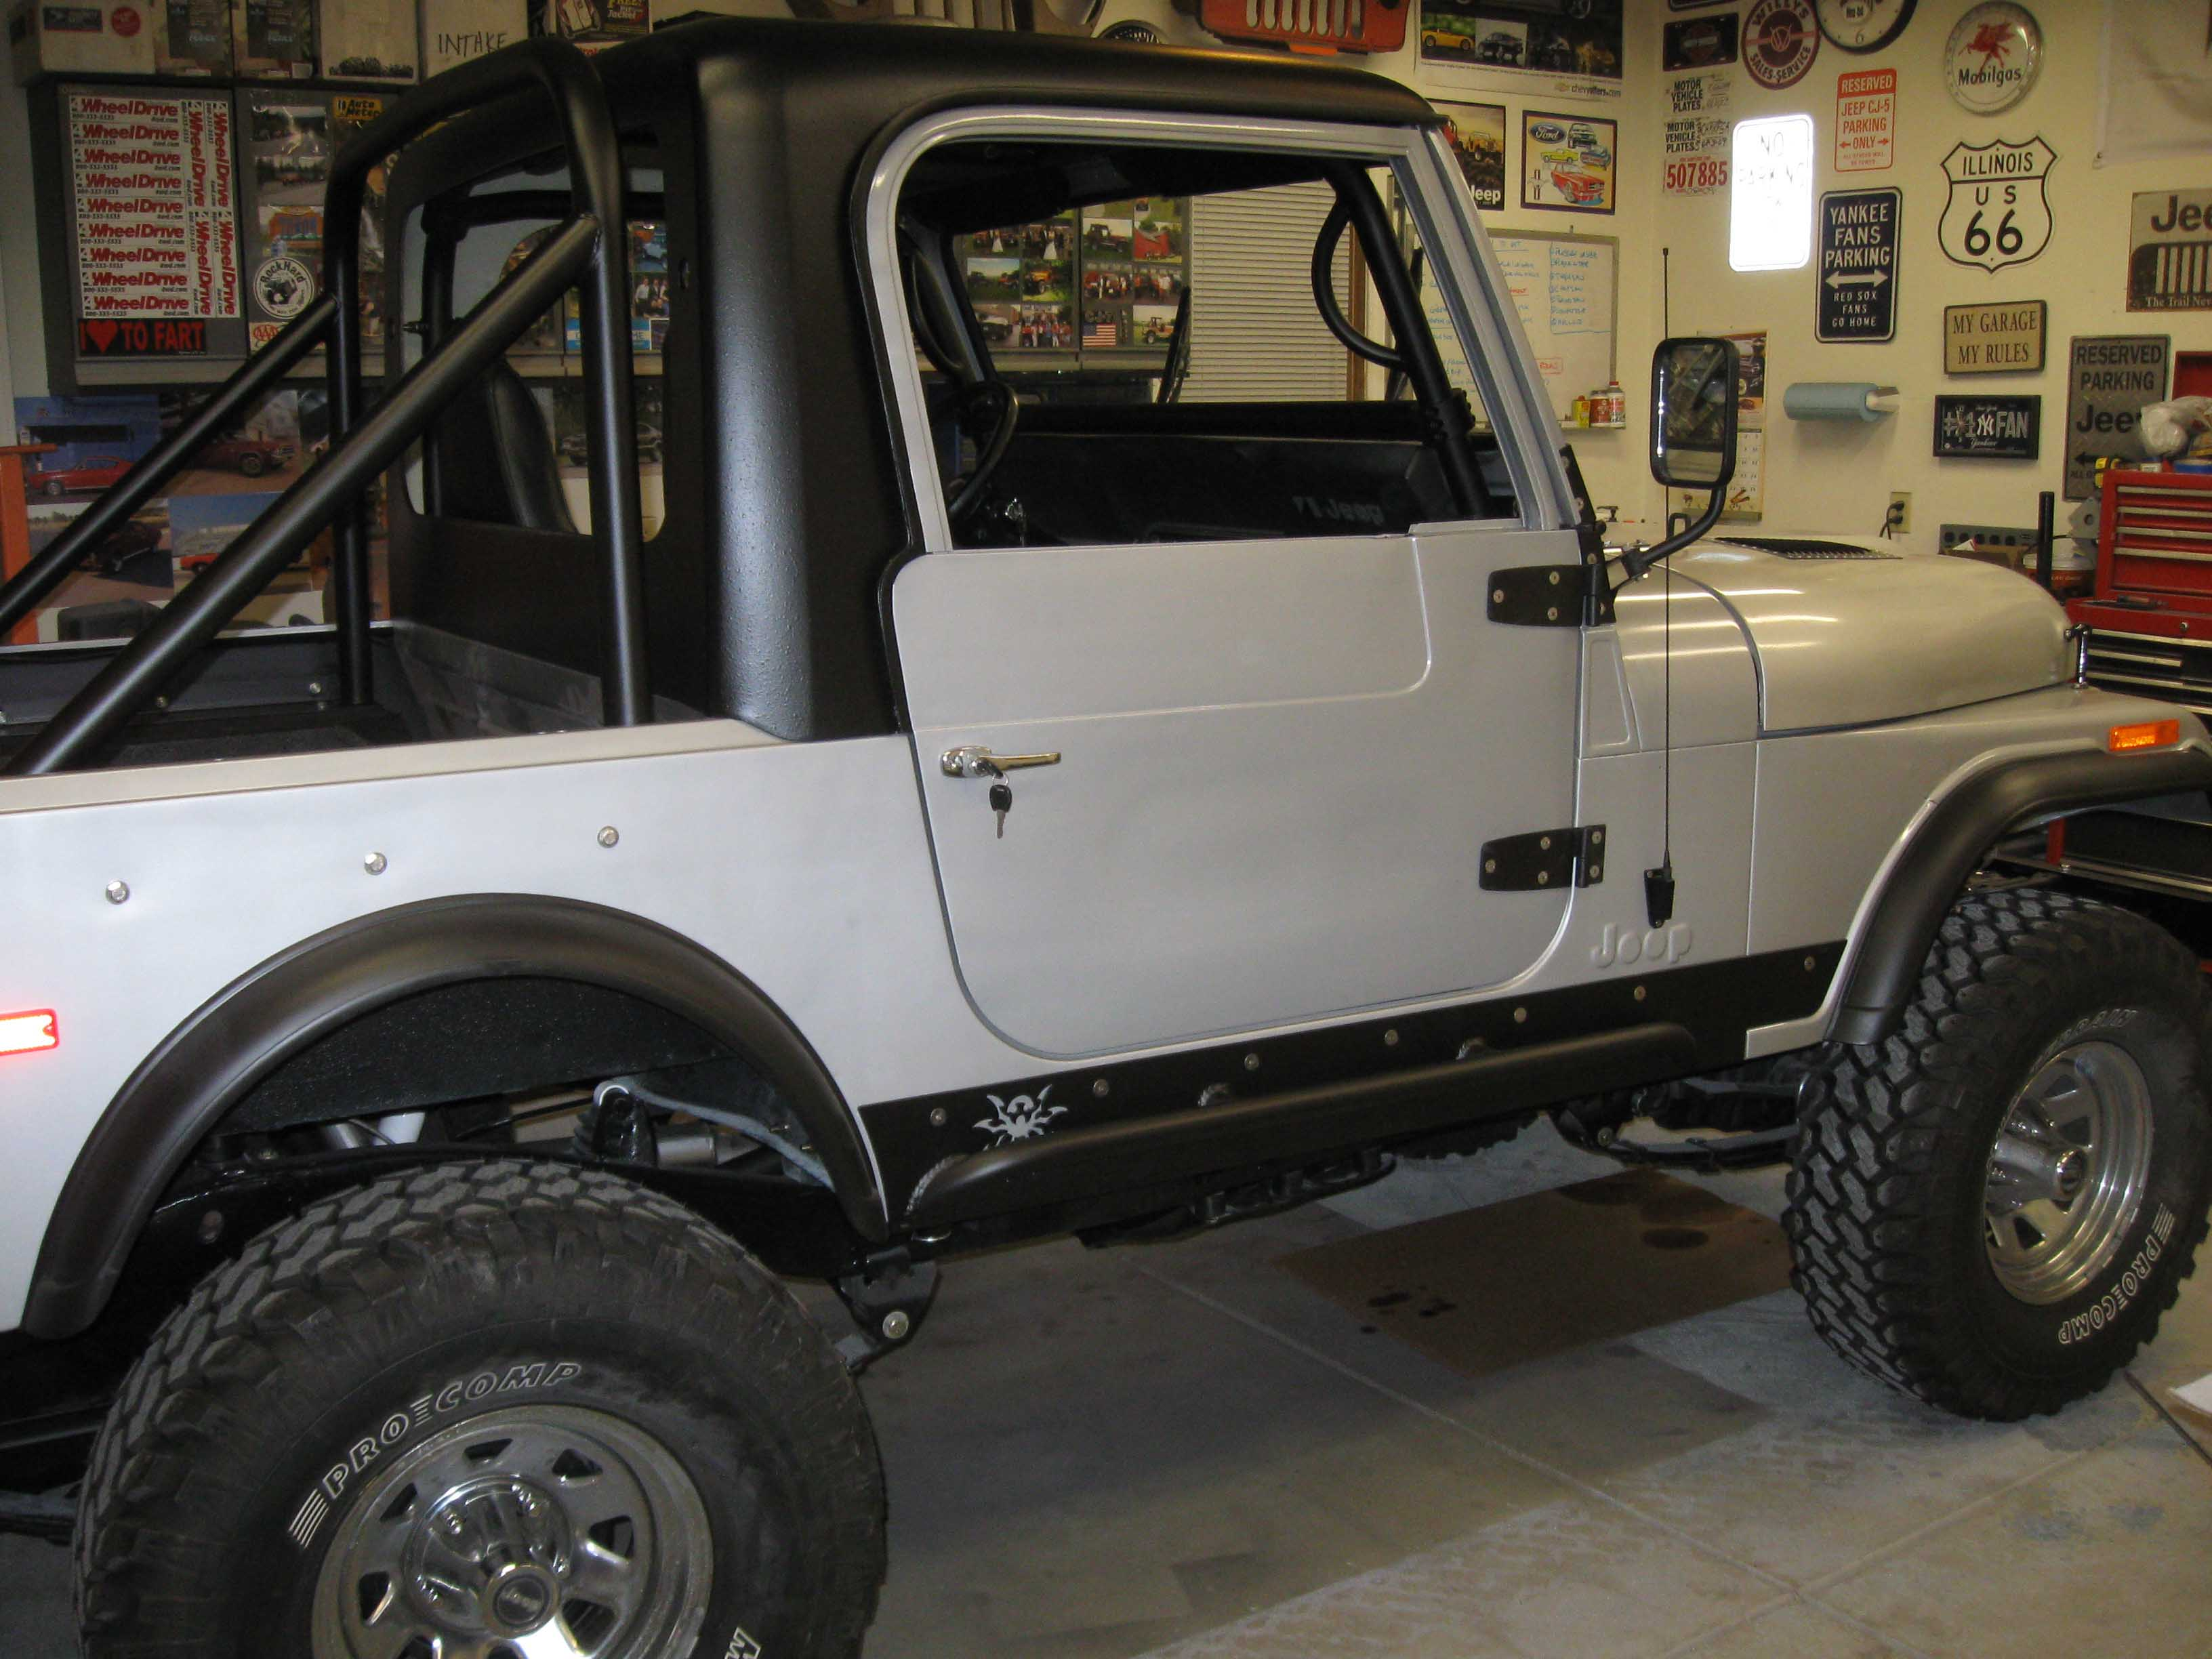 Truth Be Told I Have Never Used Hard Doors On Any Jeep That I Had... Minus The 76 CJ7 But I Never Took Them Apart . & Cj7 Hard Doors \u0026 81-95 Jeep CJ7 YJ Passenger Side Full Hard Door ... Pezcame.Com